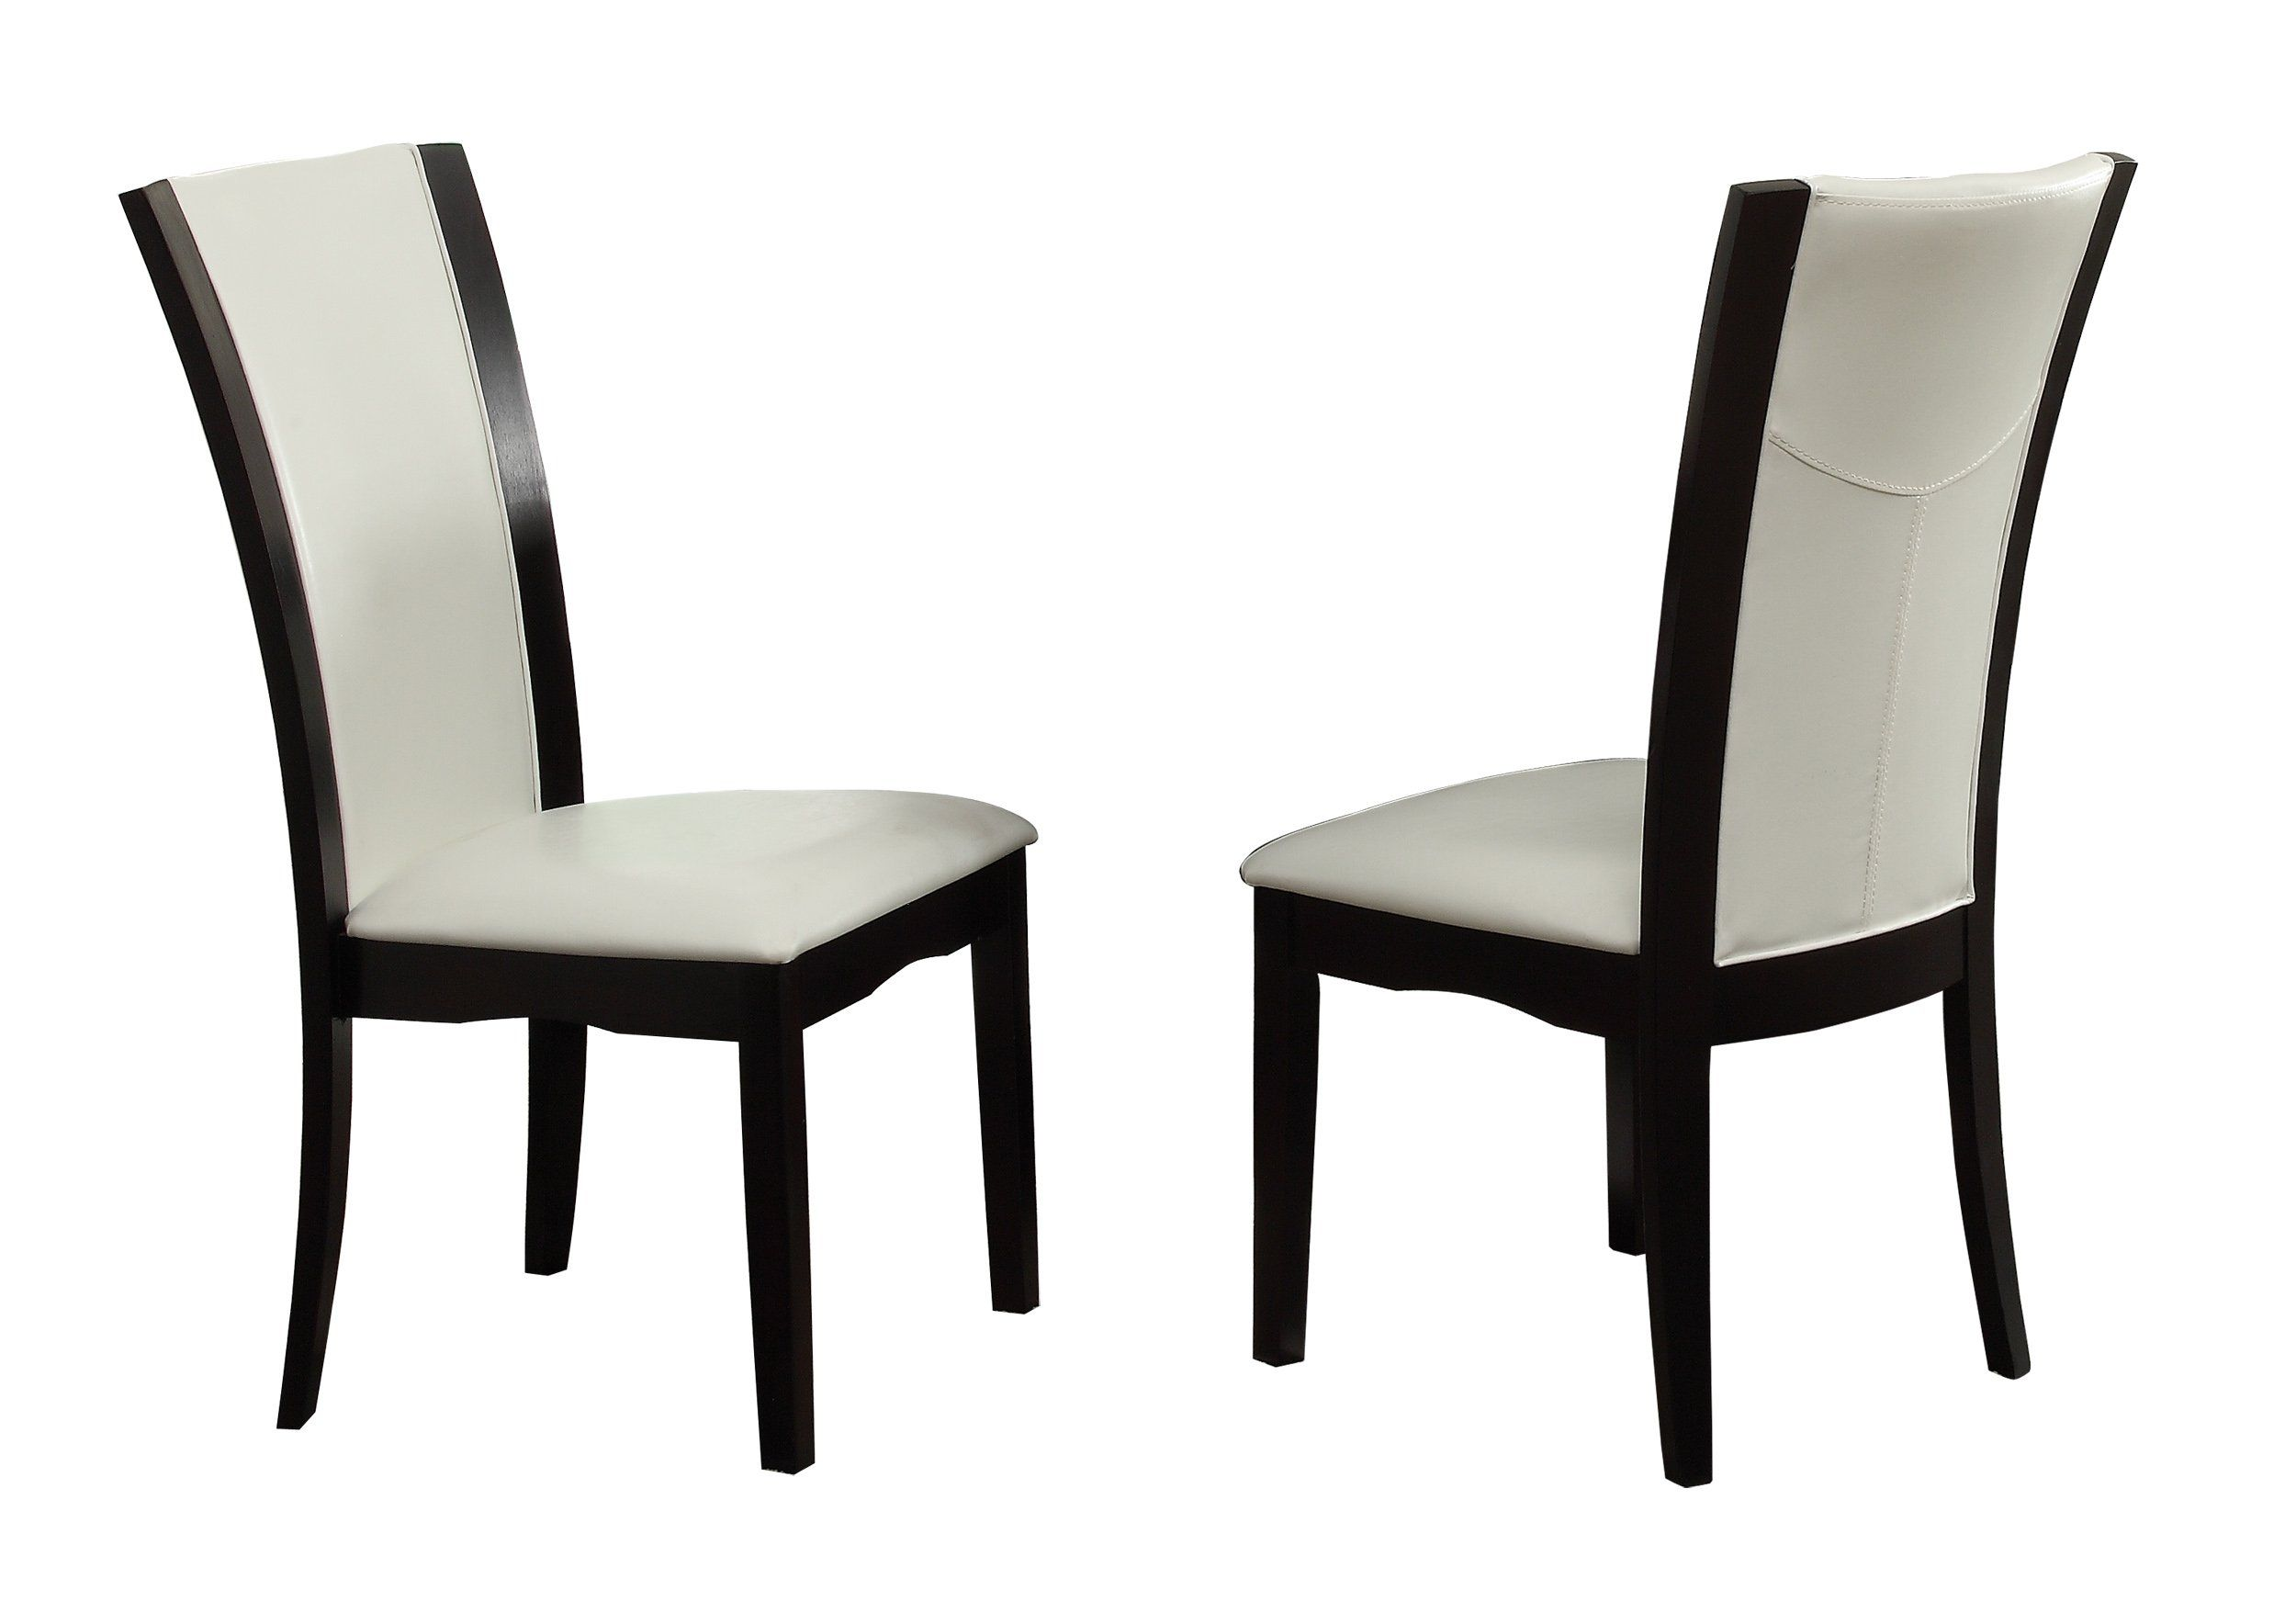 Homelegance Daisy Modern Dining Chairs BiCast Vinyl Cover